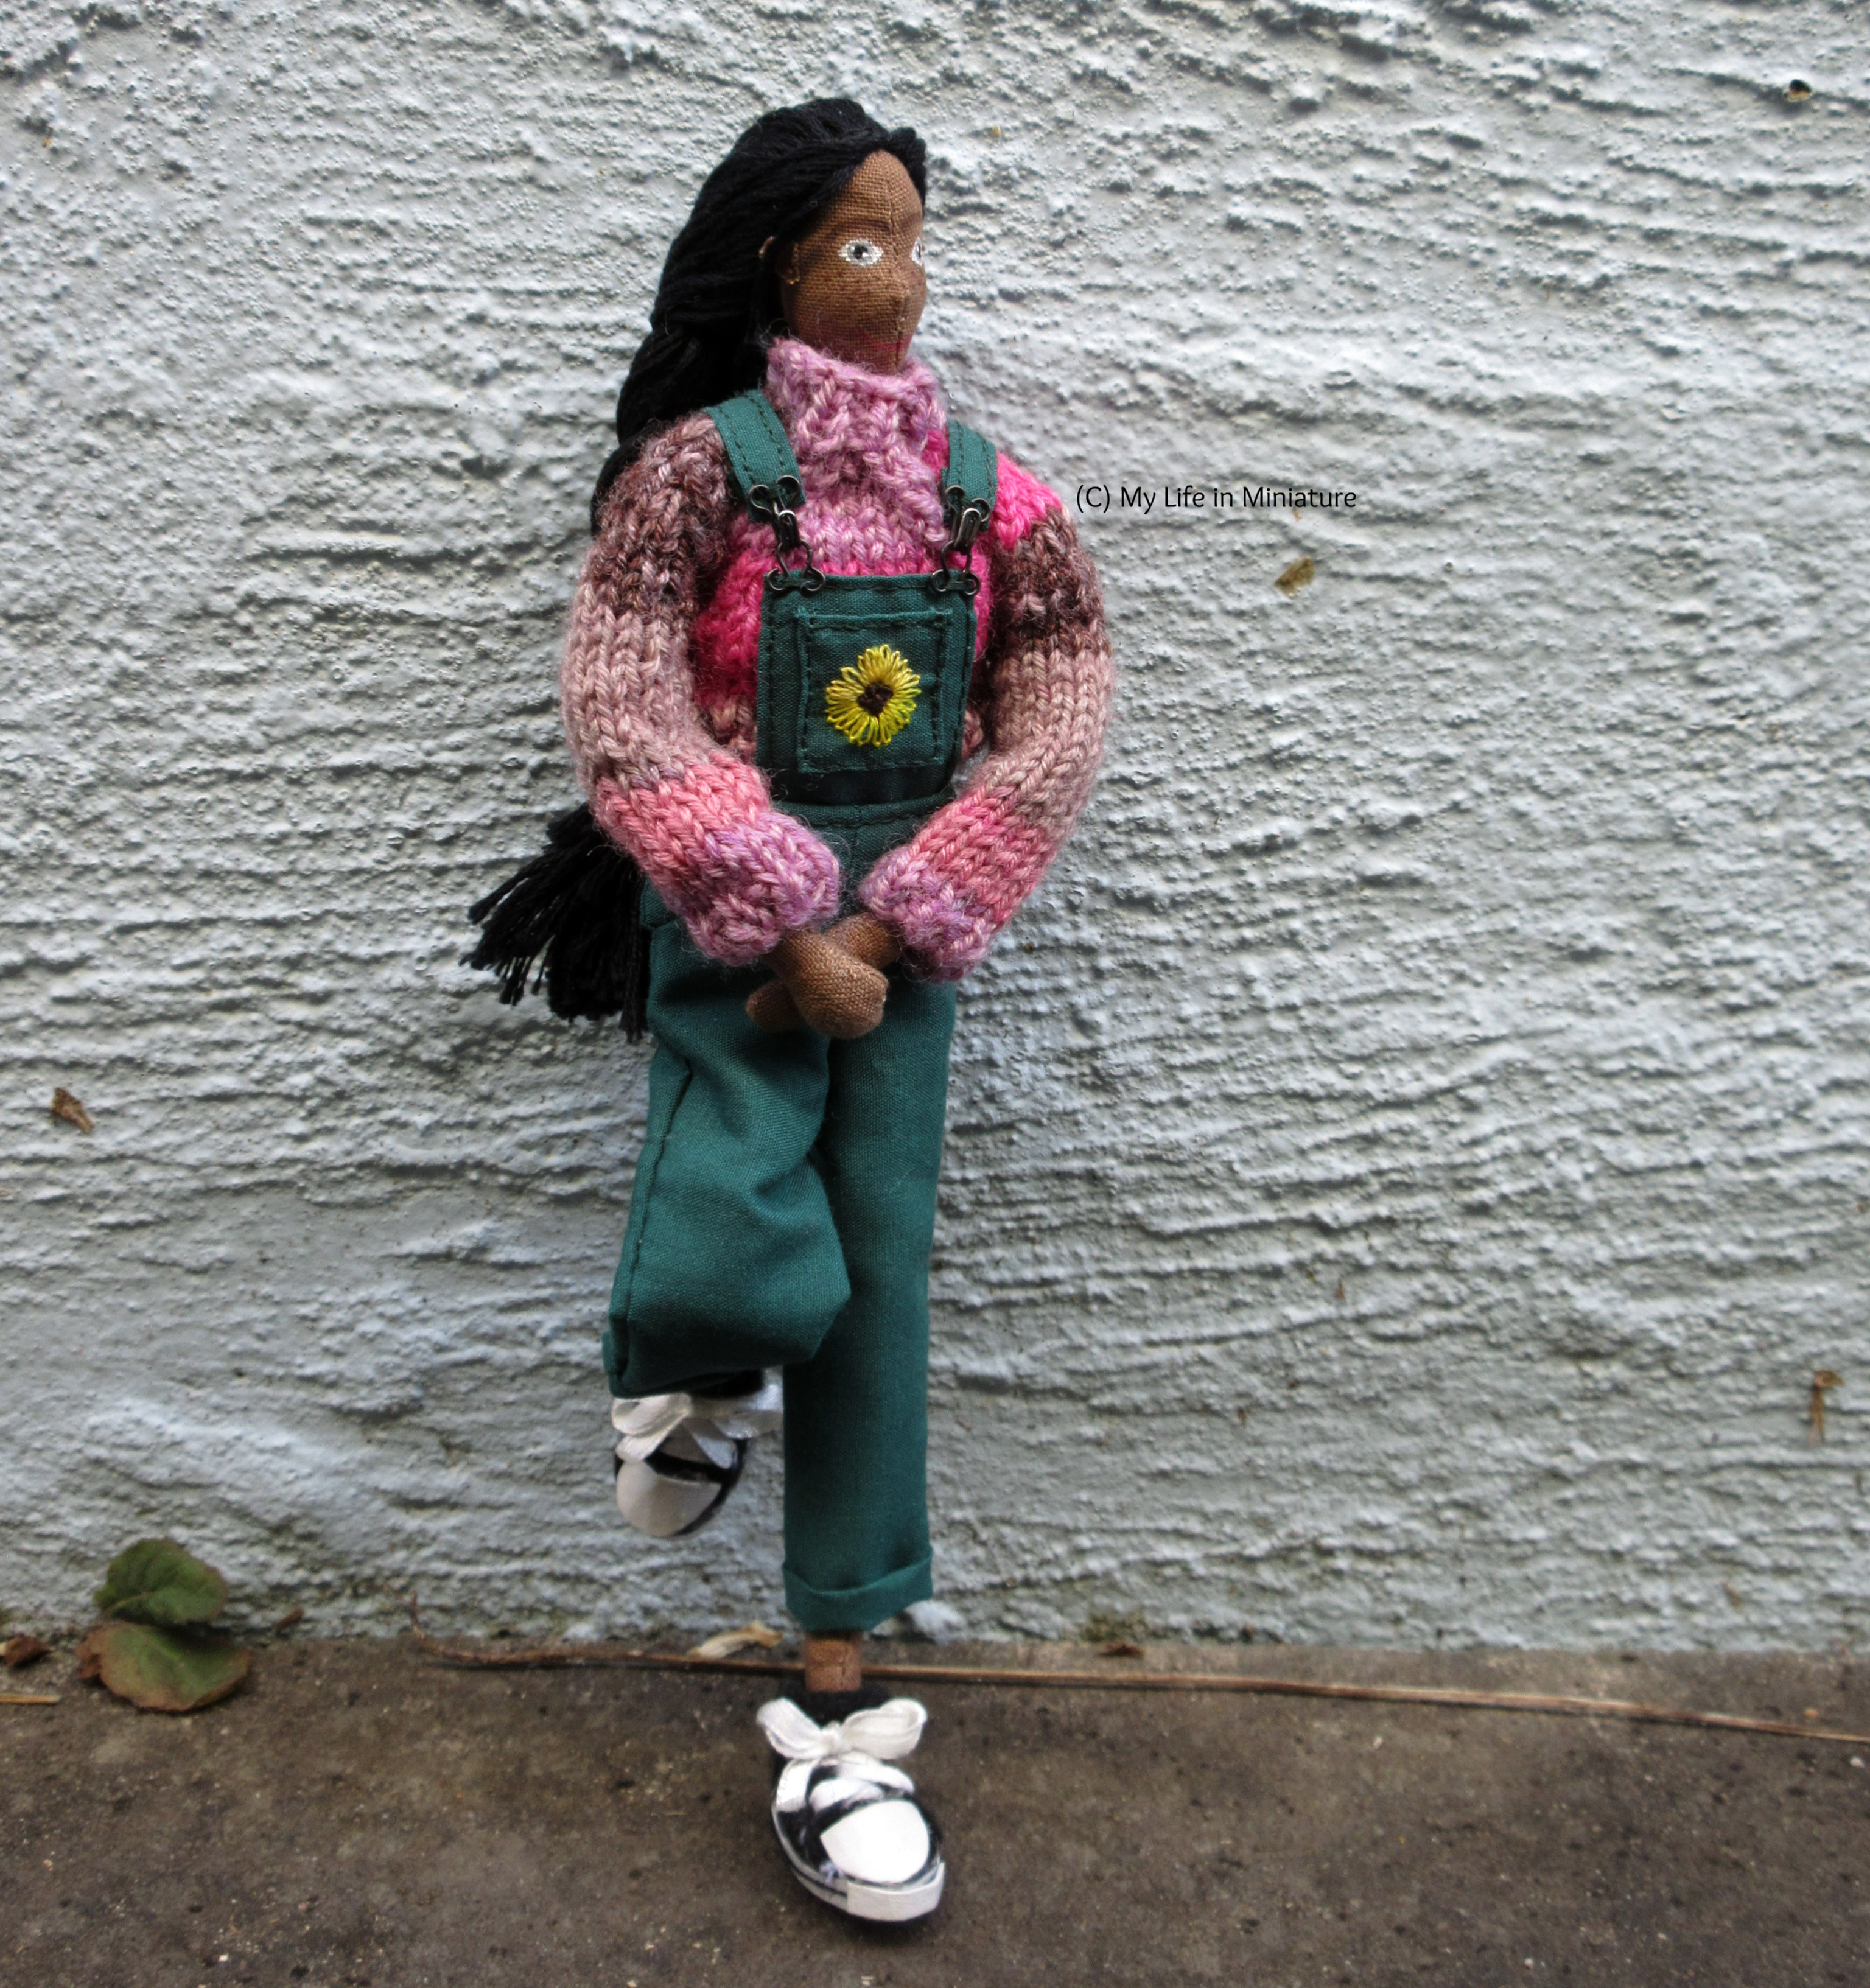 Petra wears the pink jumper, green dungarees, and black shoes against an outdoor textured wall. She has one foot up on the wall, and her hands in front of her. She looks to the right.